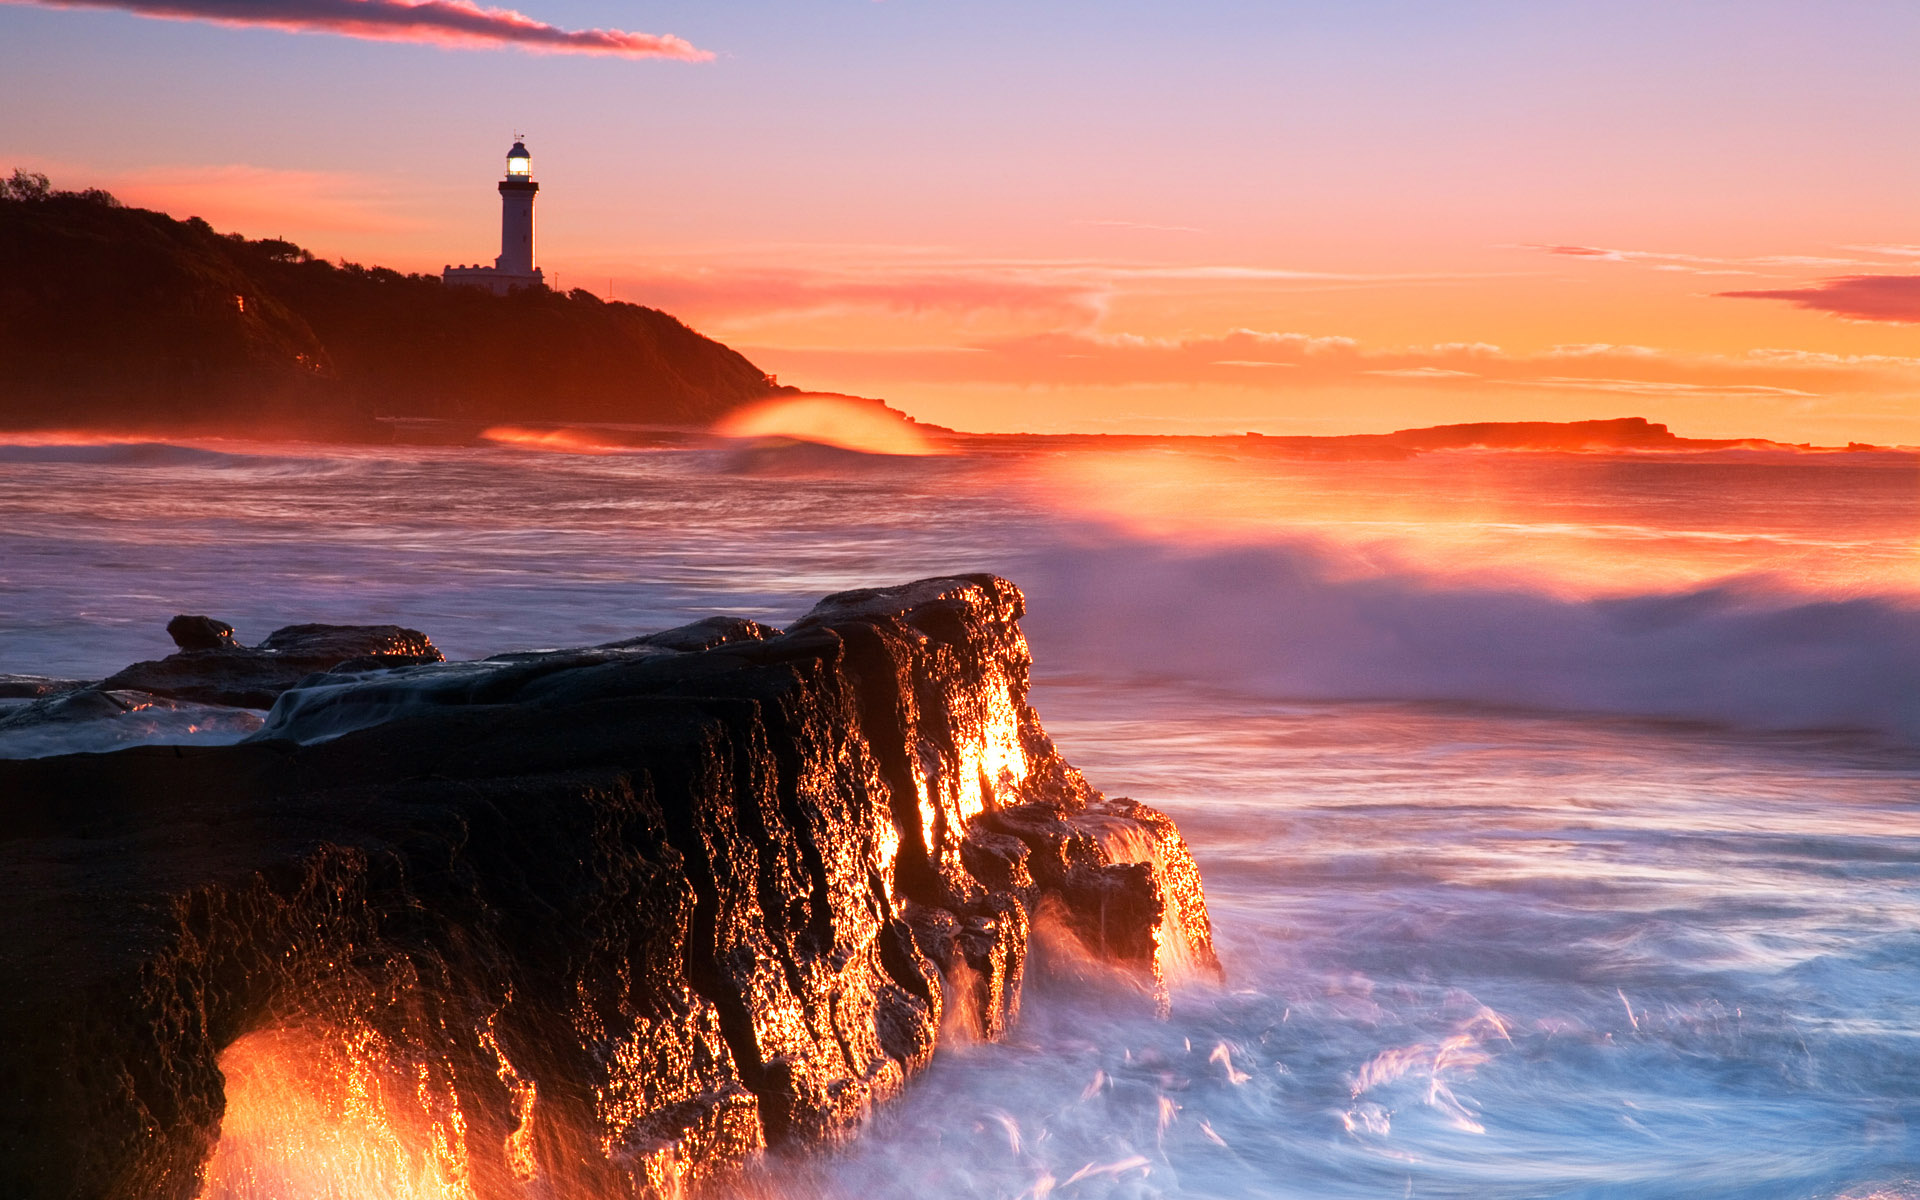 Man Made - Lighthouse  Orange Sunset Ocean Wave Wallpaper